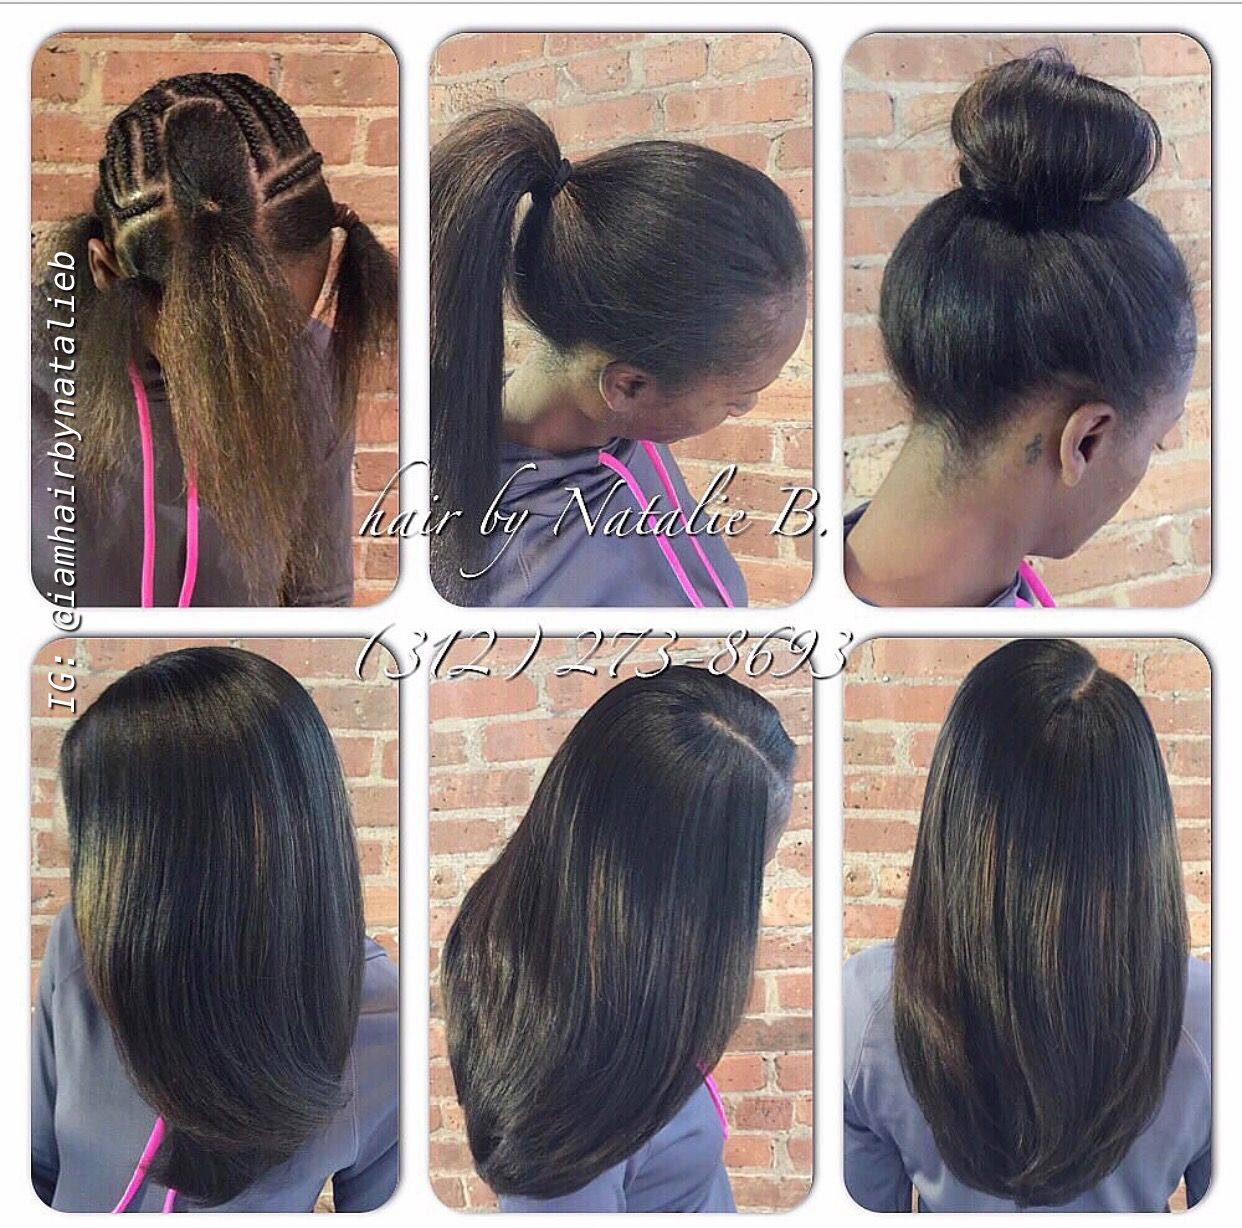 Perfect Pony Sew In Hair Weave By Natalie B 312 273 8693 Located